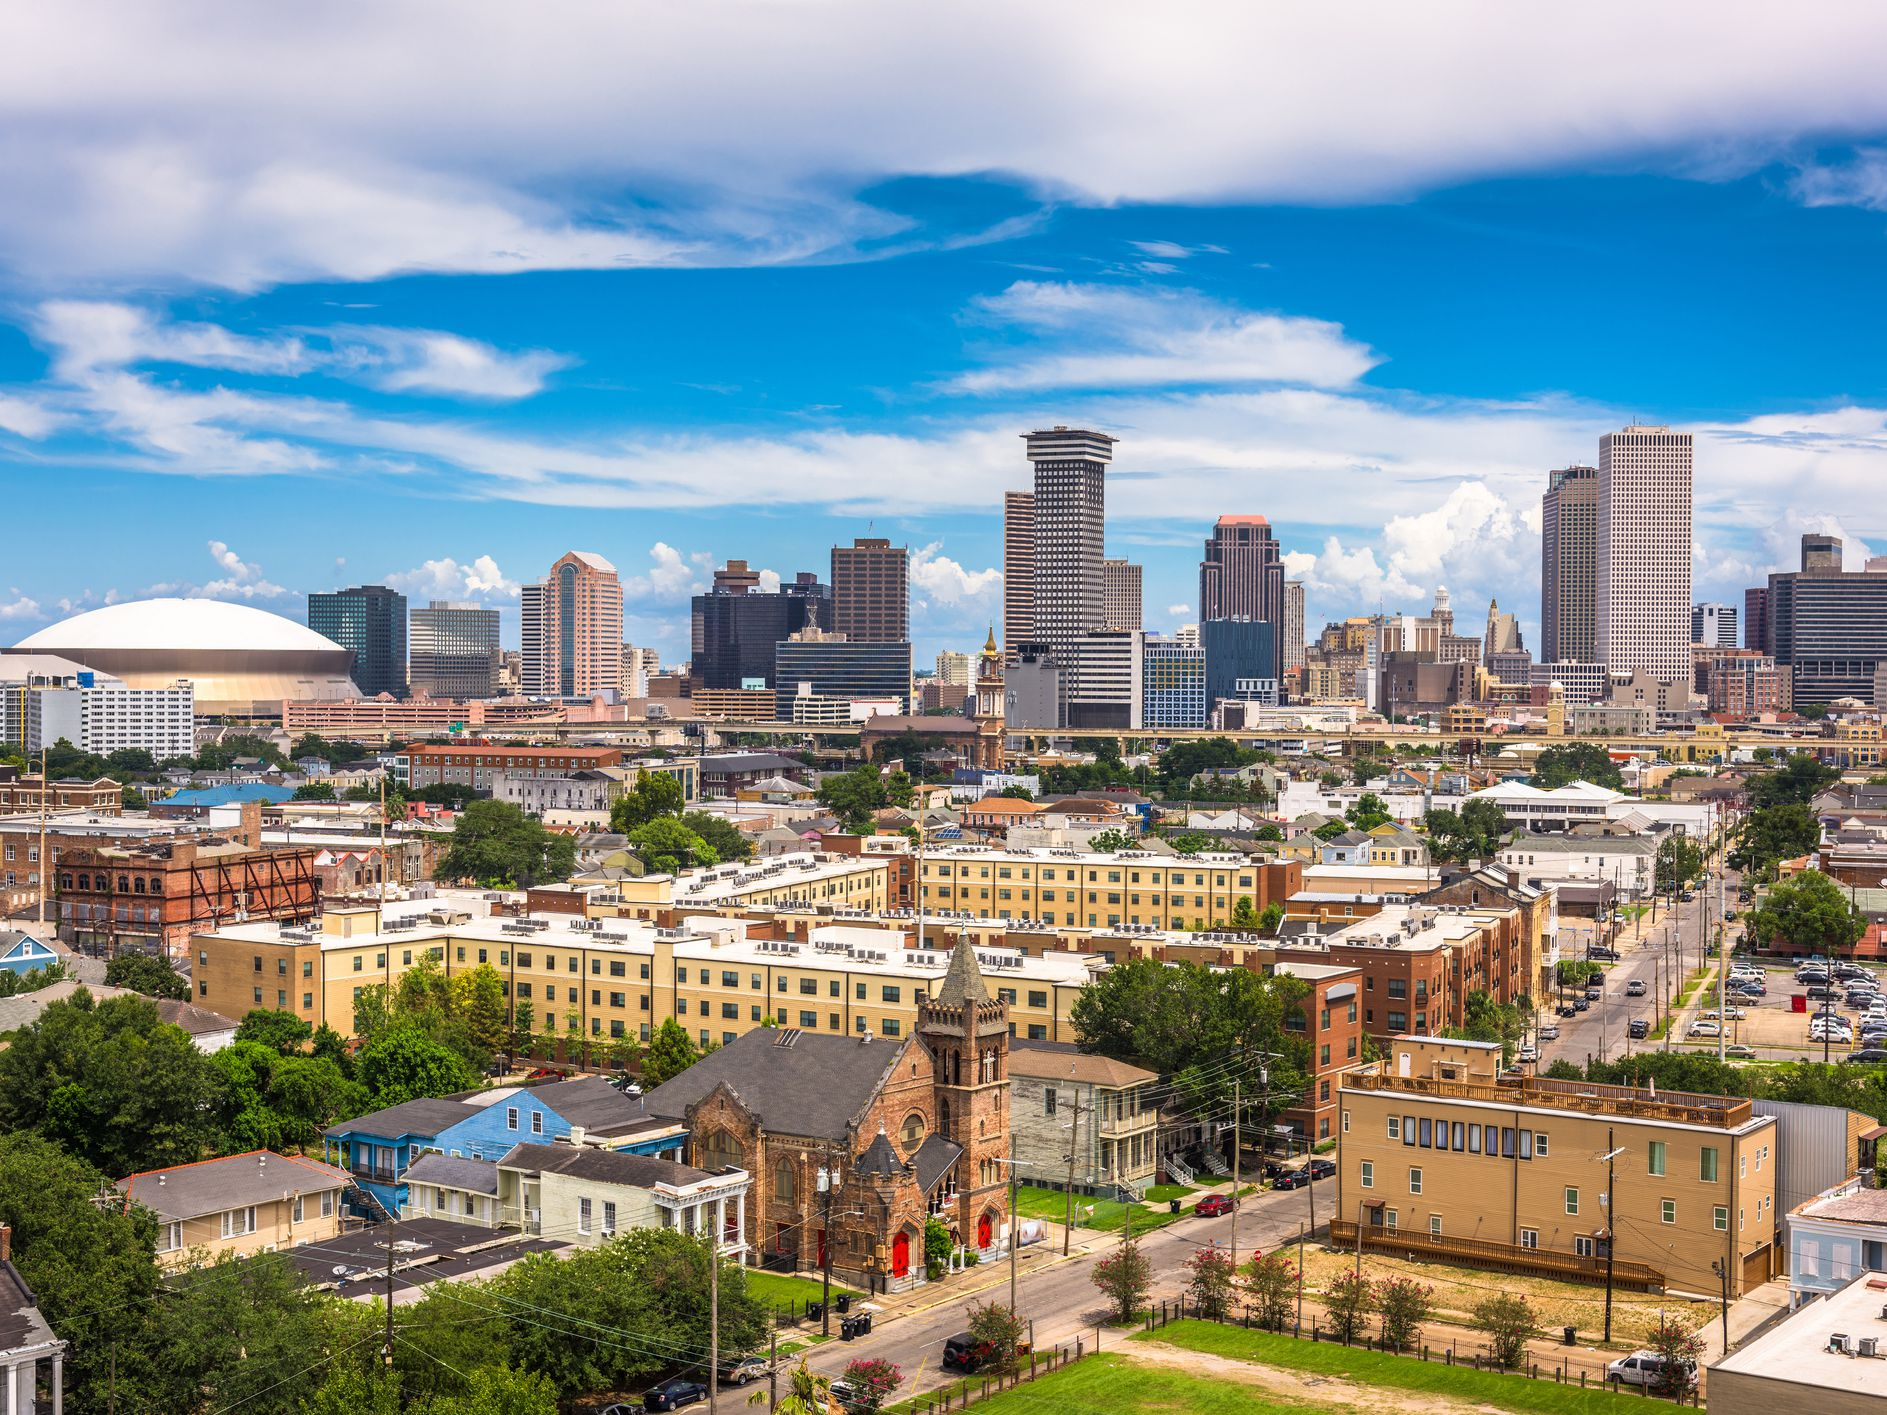 10 Neighborhoods You Need to Know in New Orleans